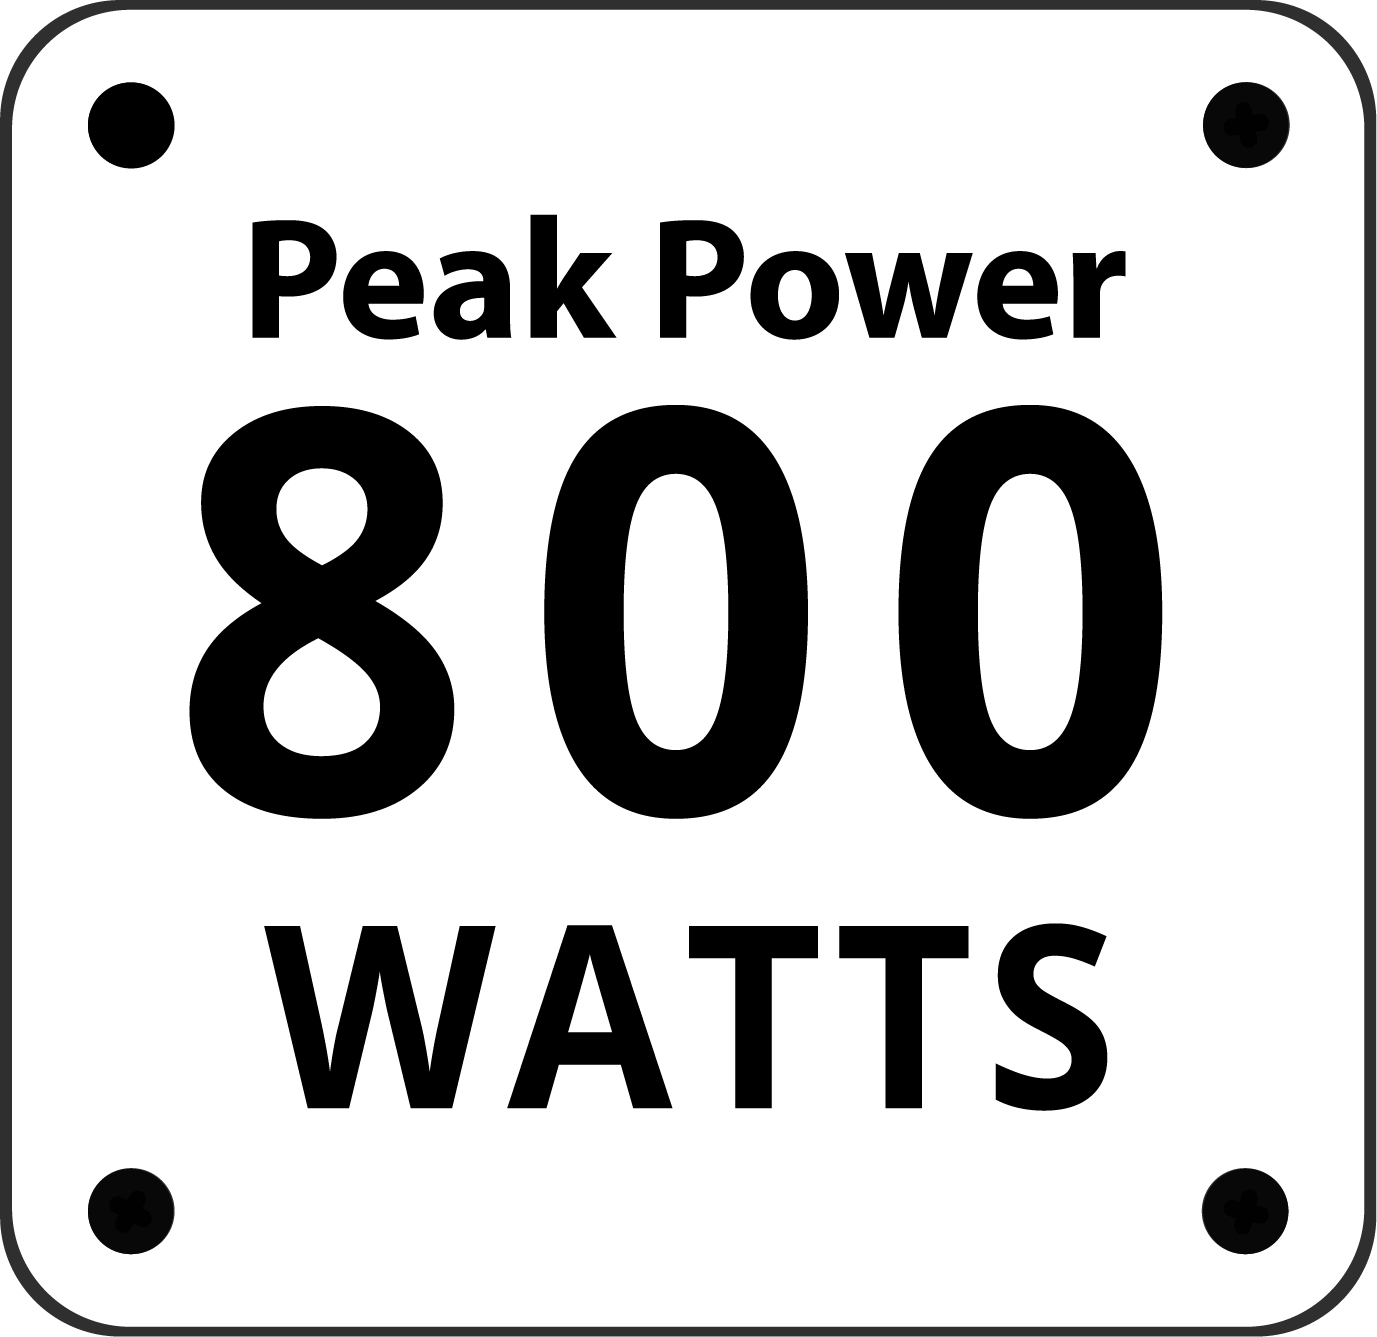 800-peak-power